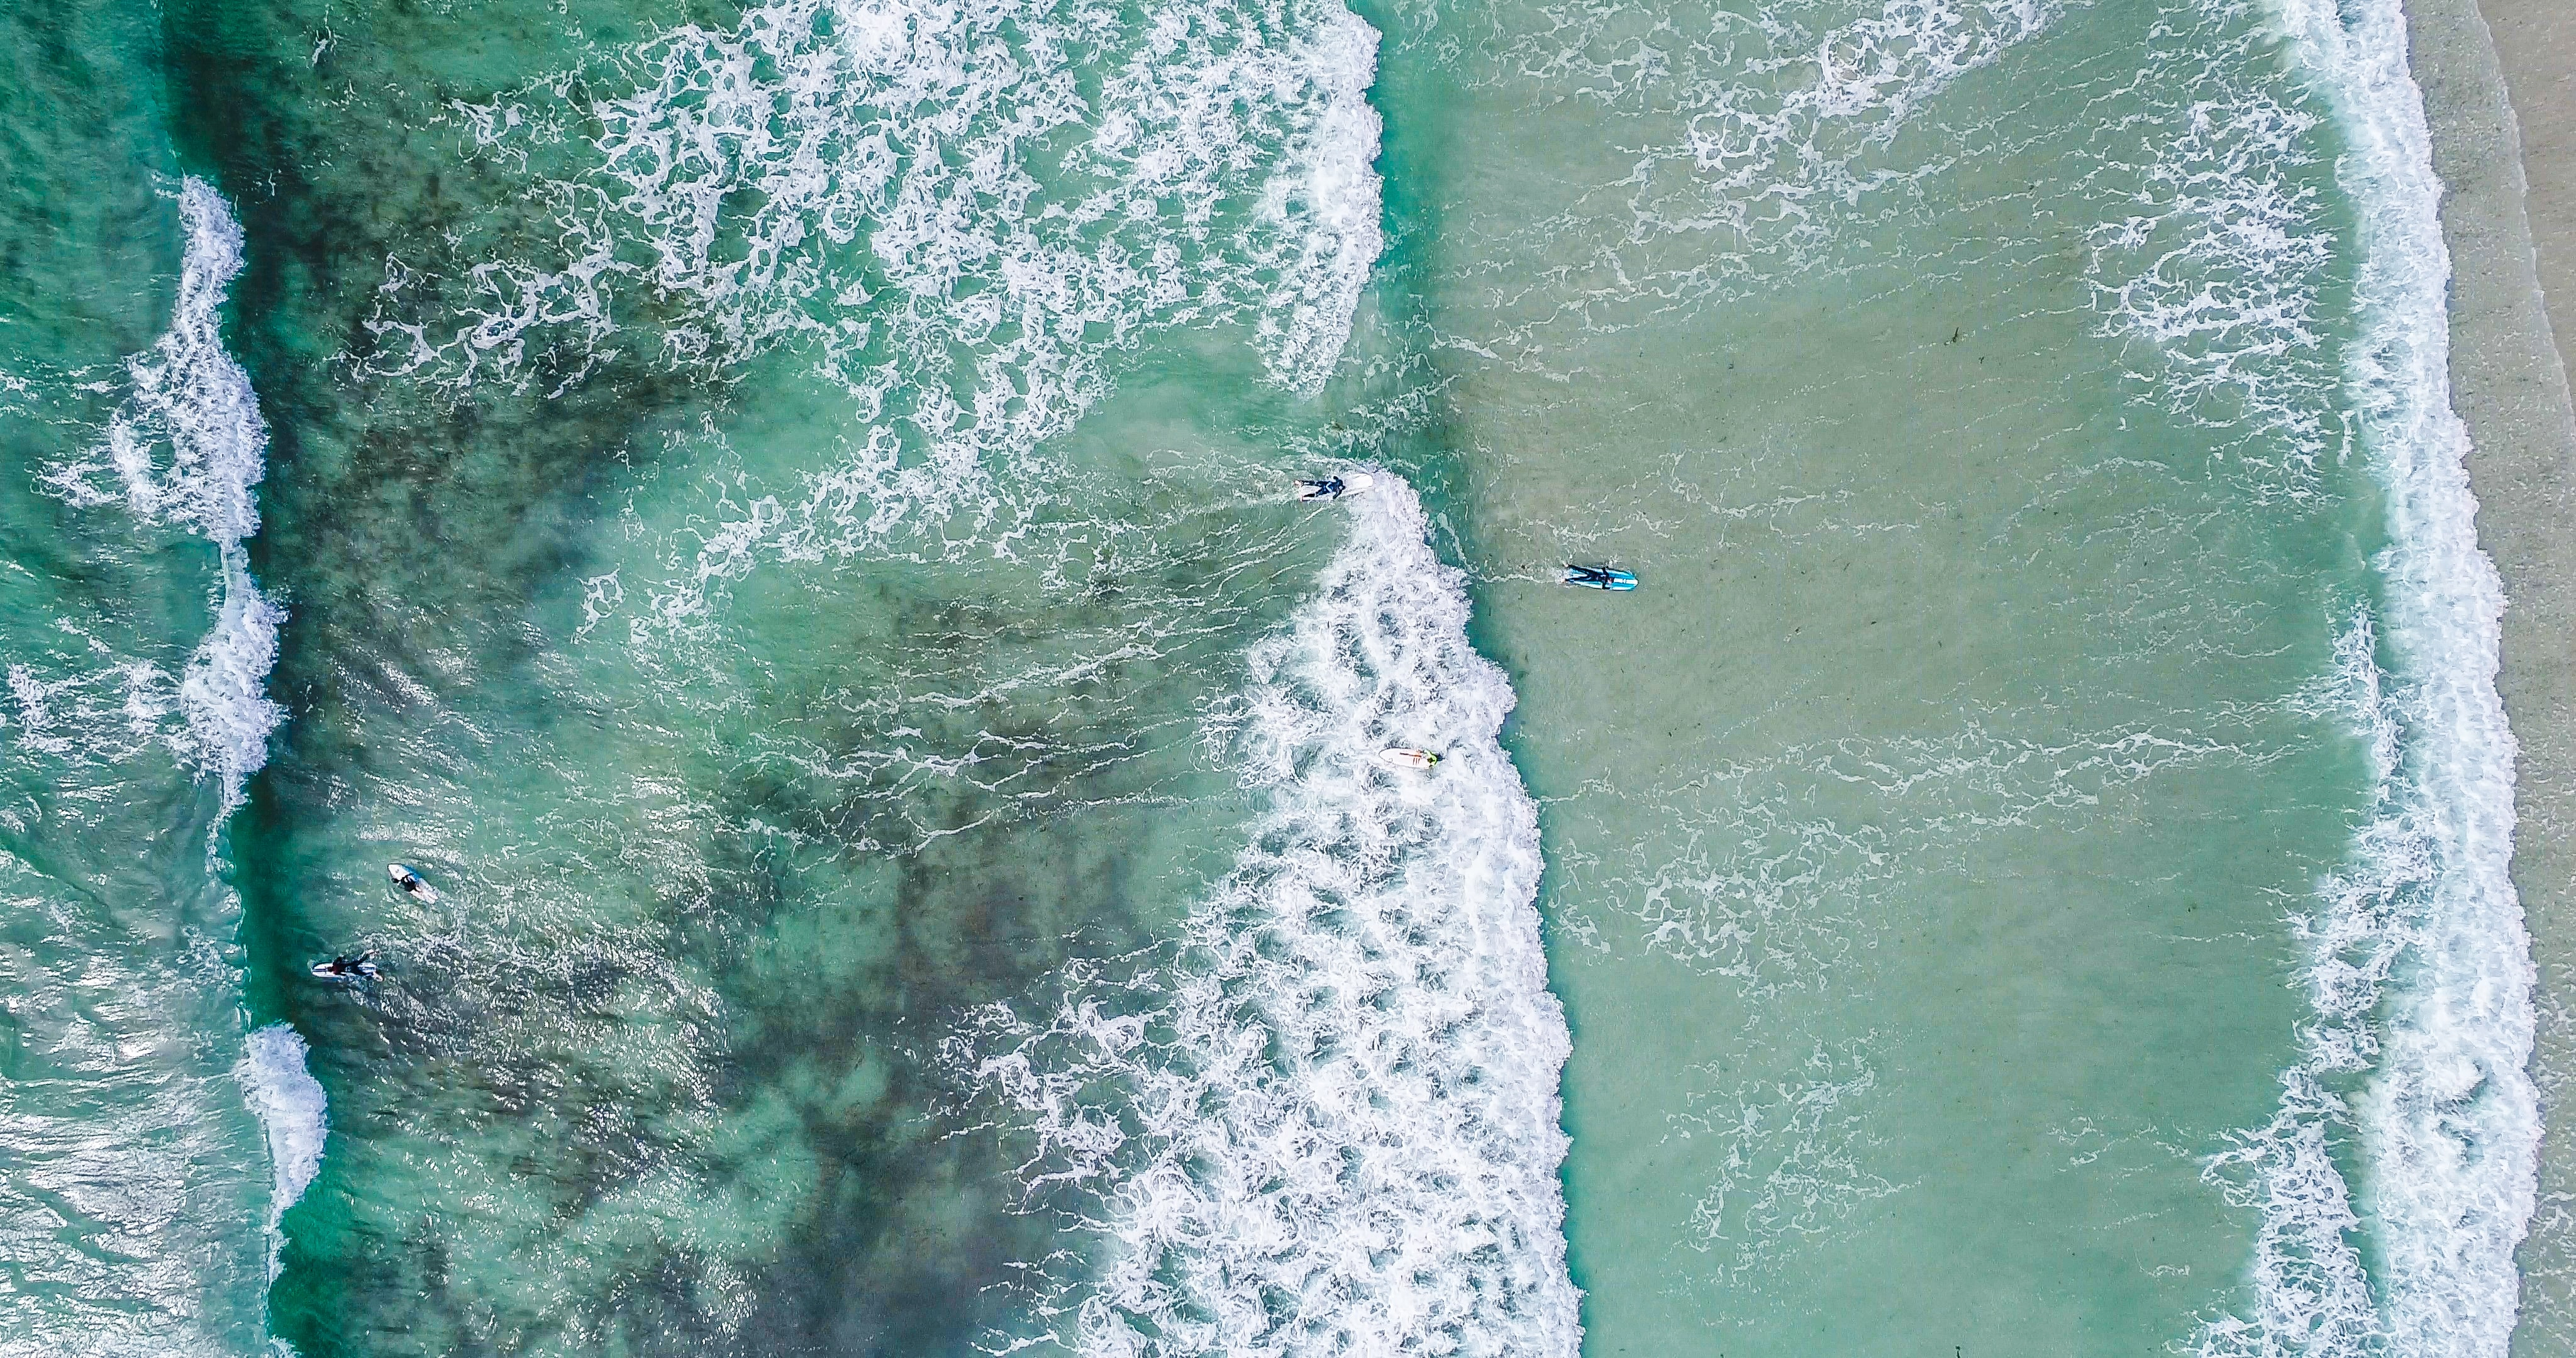 Drone aerial view of surfers in the ocean at Guernsey Surf School